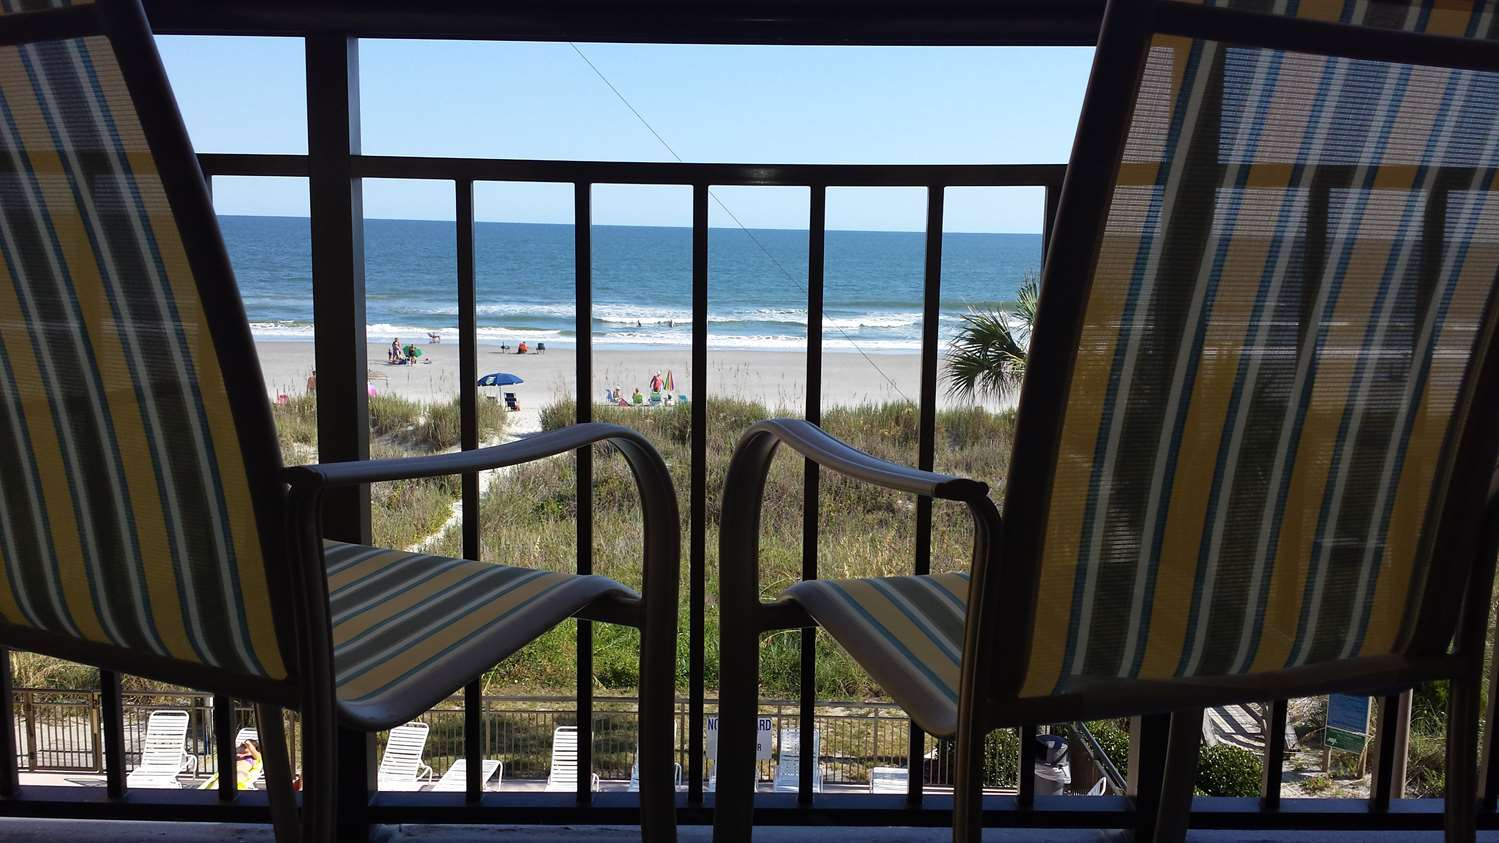 View From Guest Room Balcony